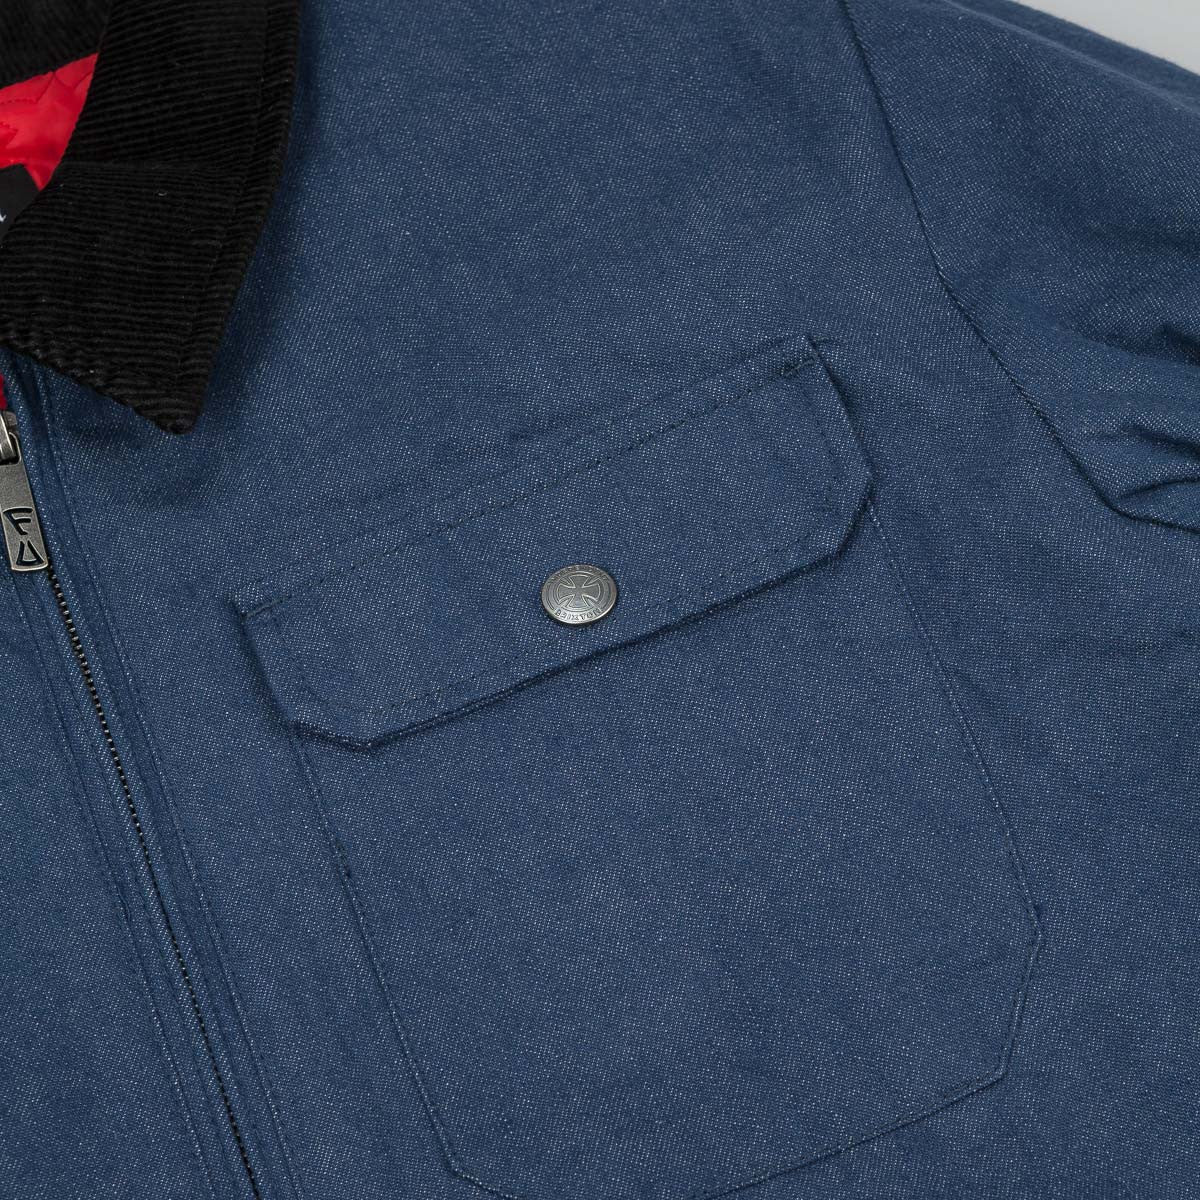 Brixton Suspension Jacket - Denim Blue